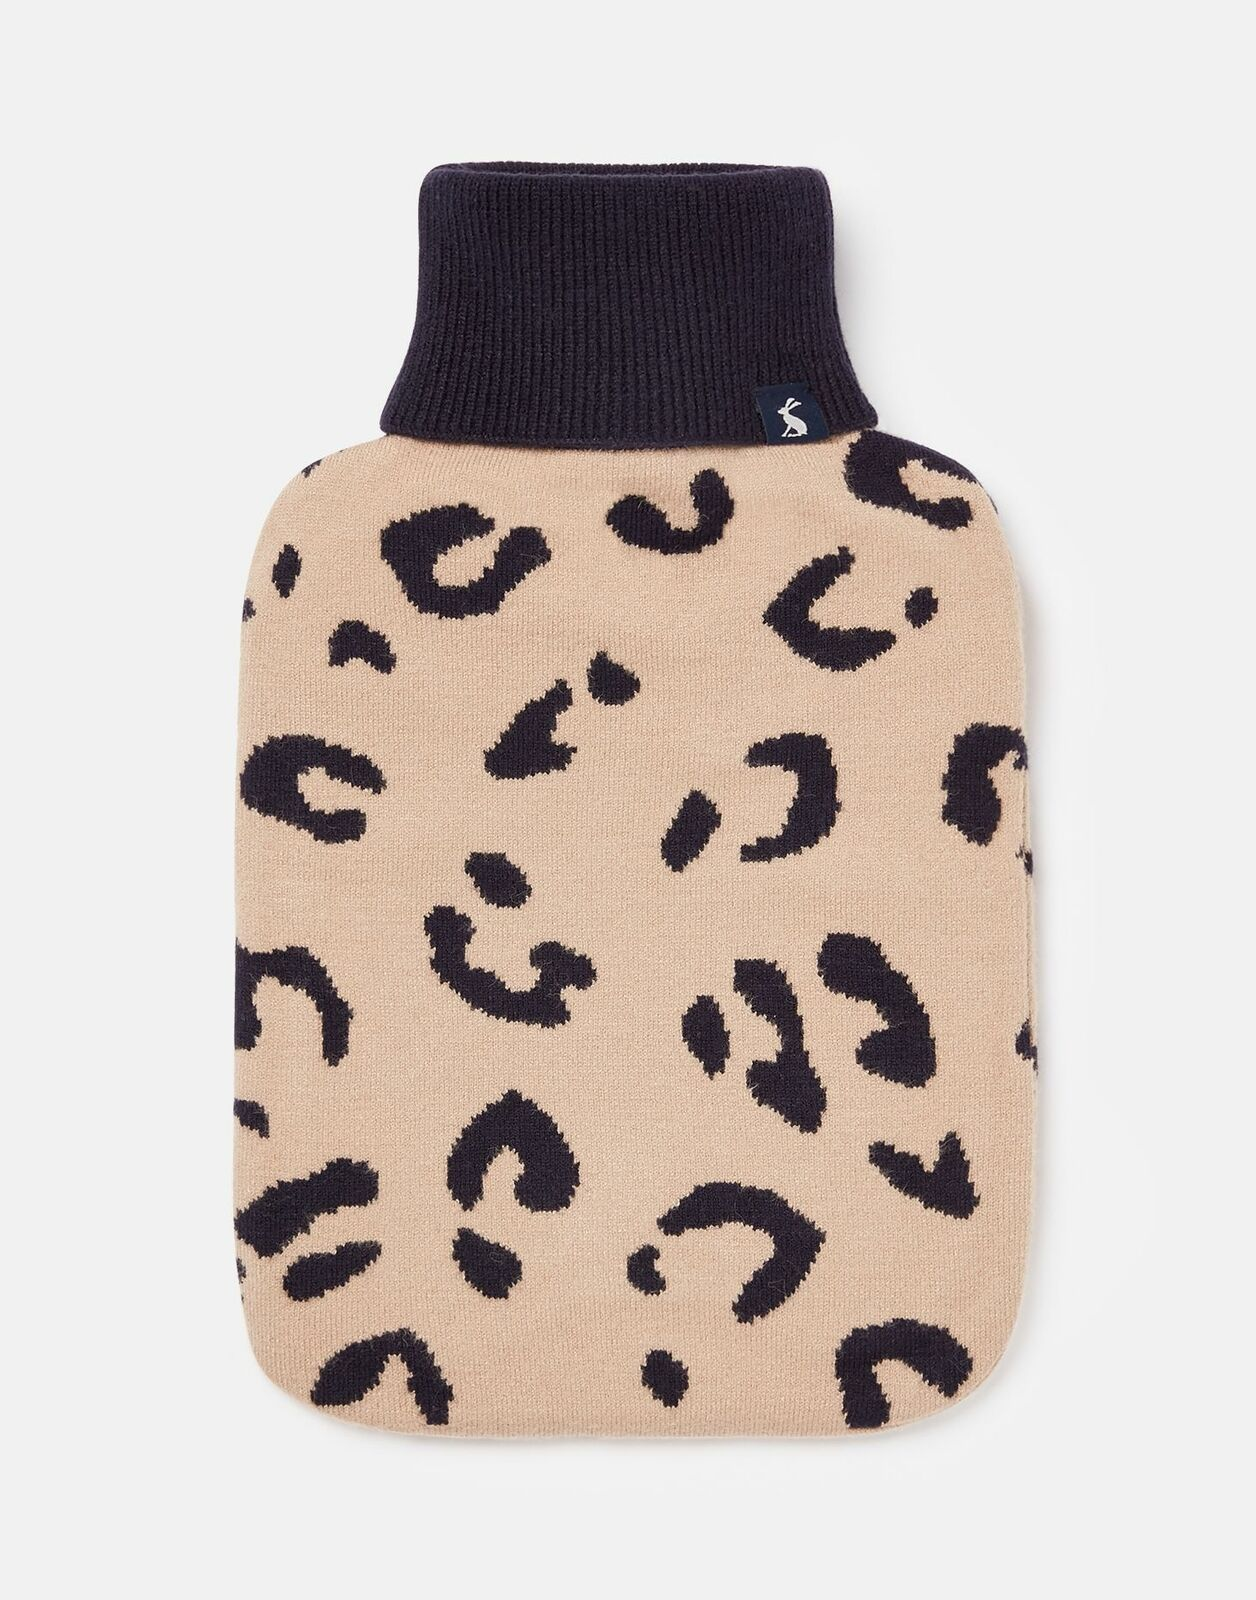 Joules Womens Warmside Hot Water Bottle - Camel Marl - One Size